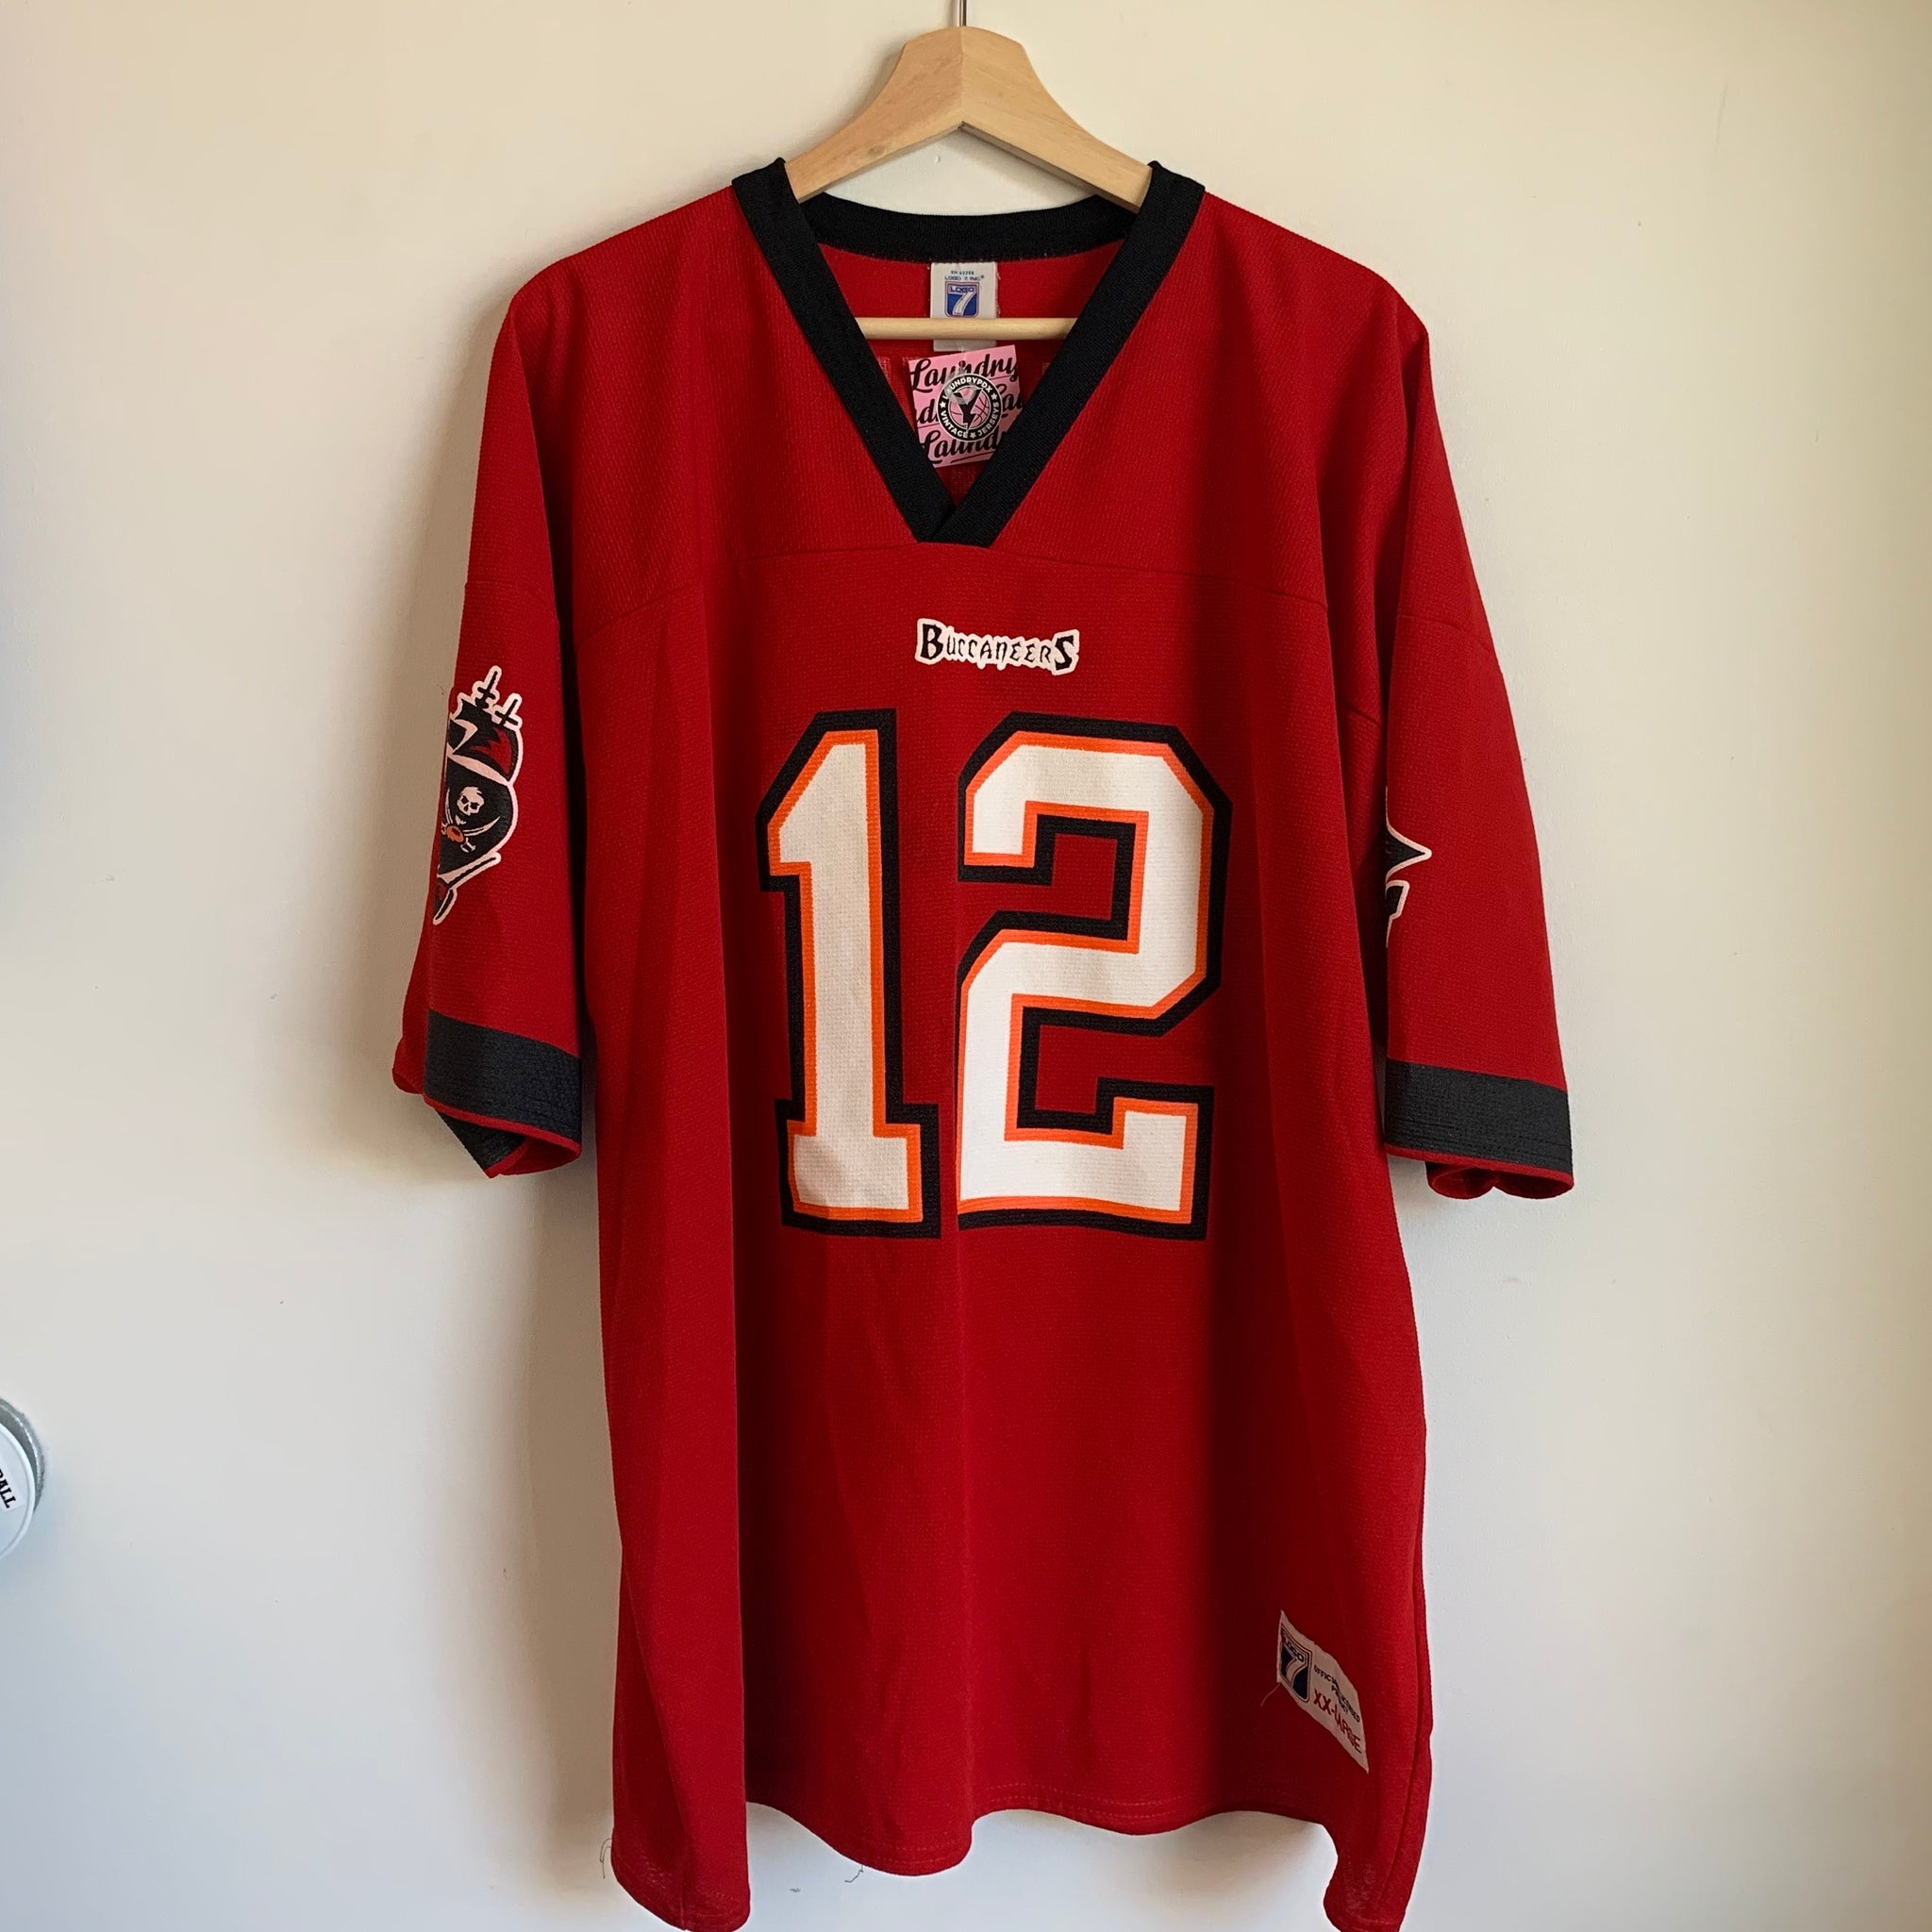 Logo 7 Trent Dilfer Tampa Bay Buccaneers Football Jersey